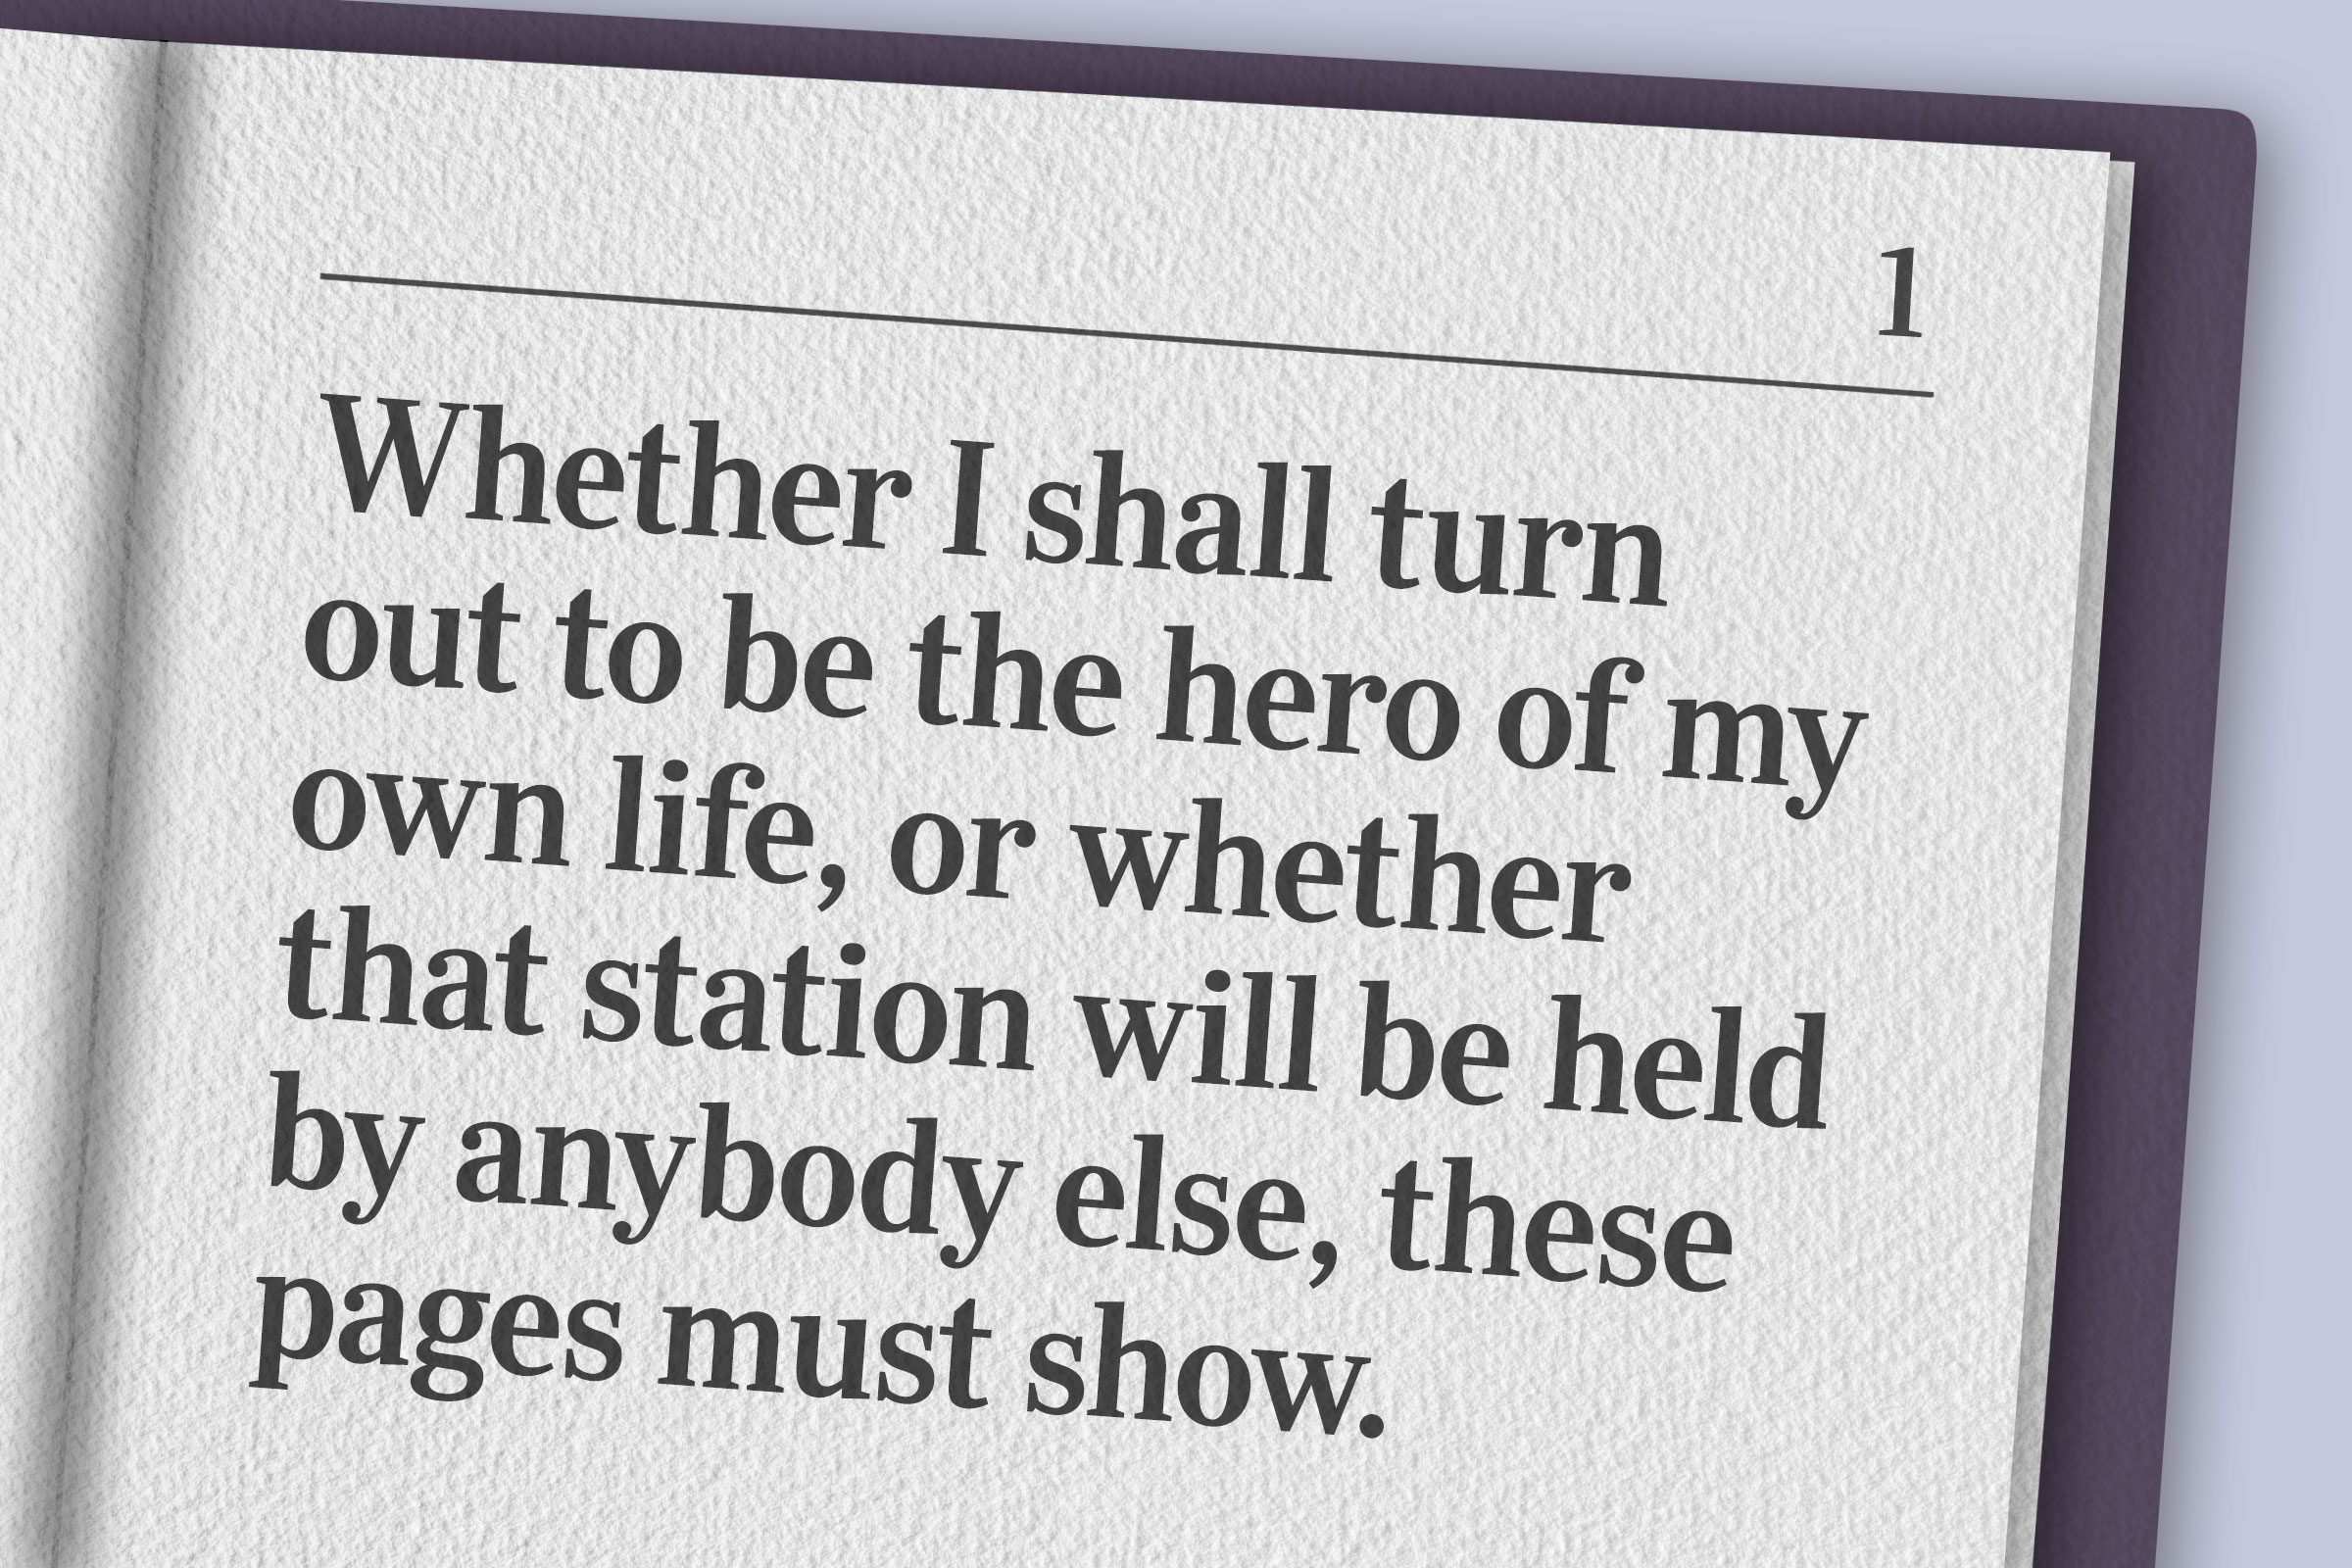 """""""Whether I shall turn out to be the hero of my own life, or whether that station will be held by anybody else, these pages must show."""""""